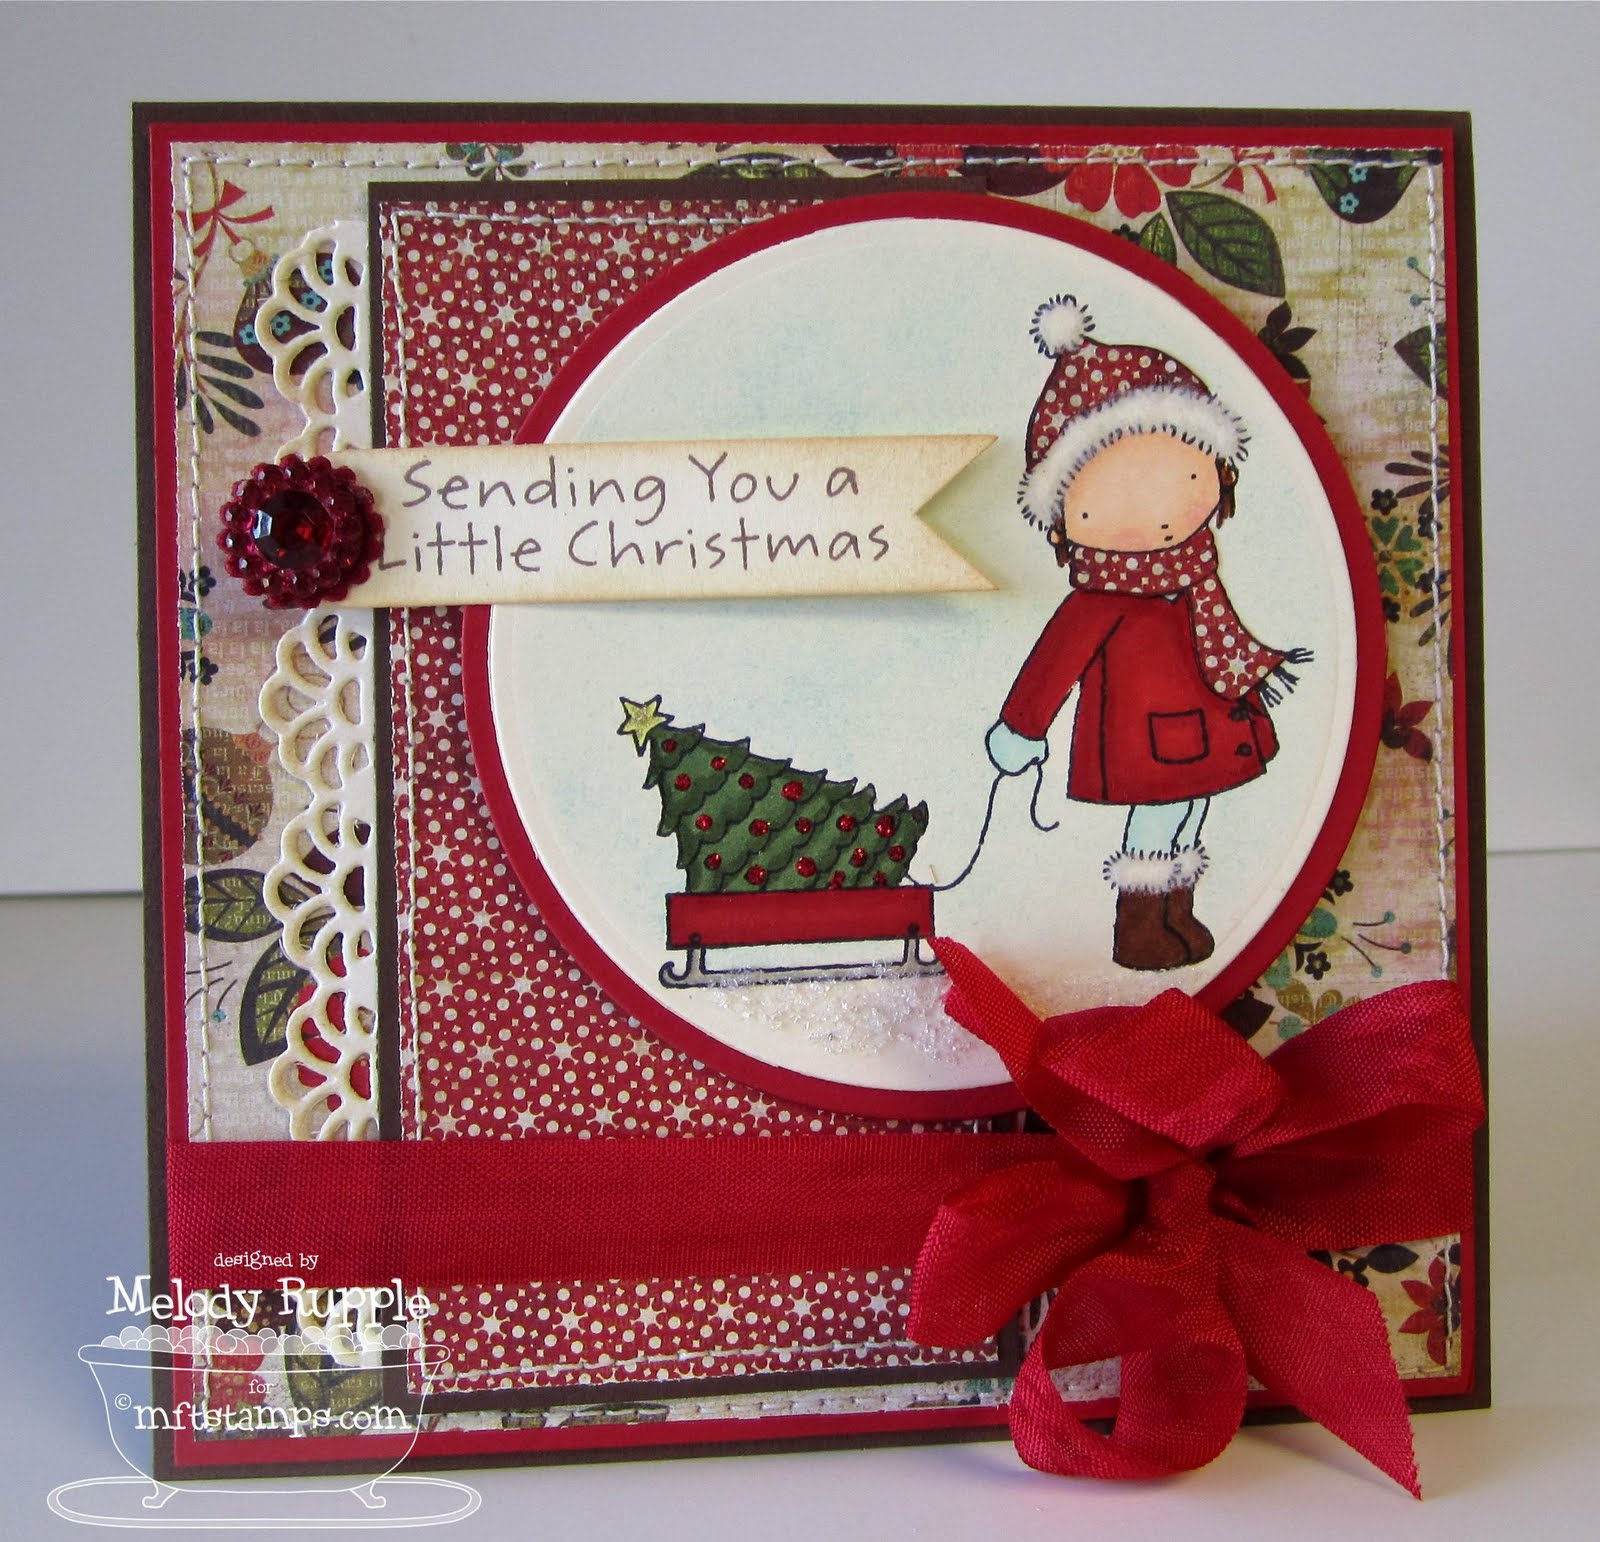 Free Quilt Patterns For Holidays : Free Christmas Quilt Patterns - My Patterns